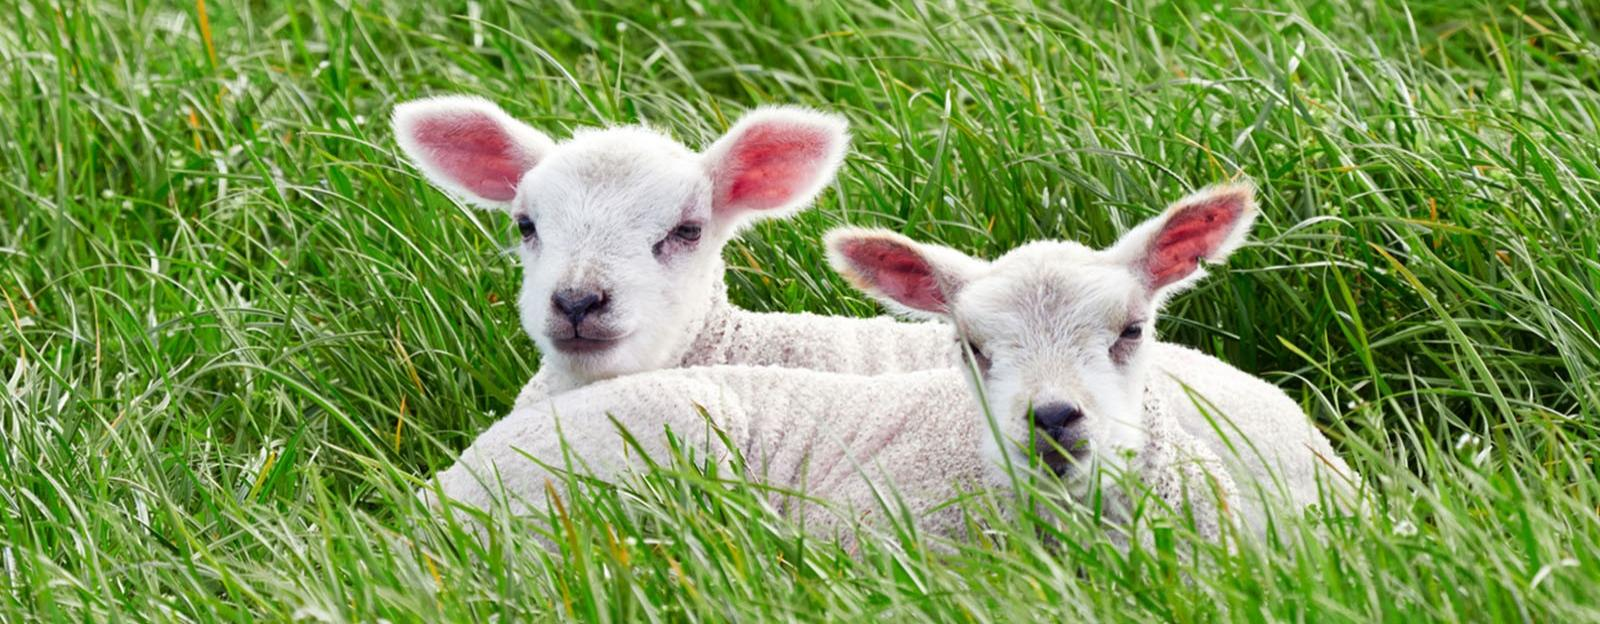 Farming insights: Lambing